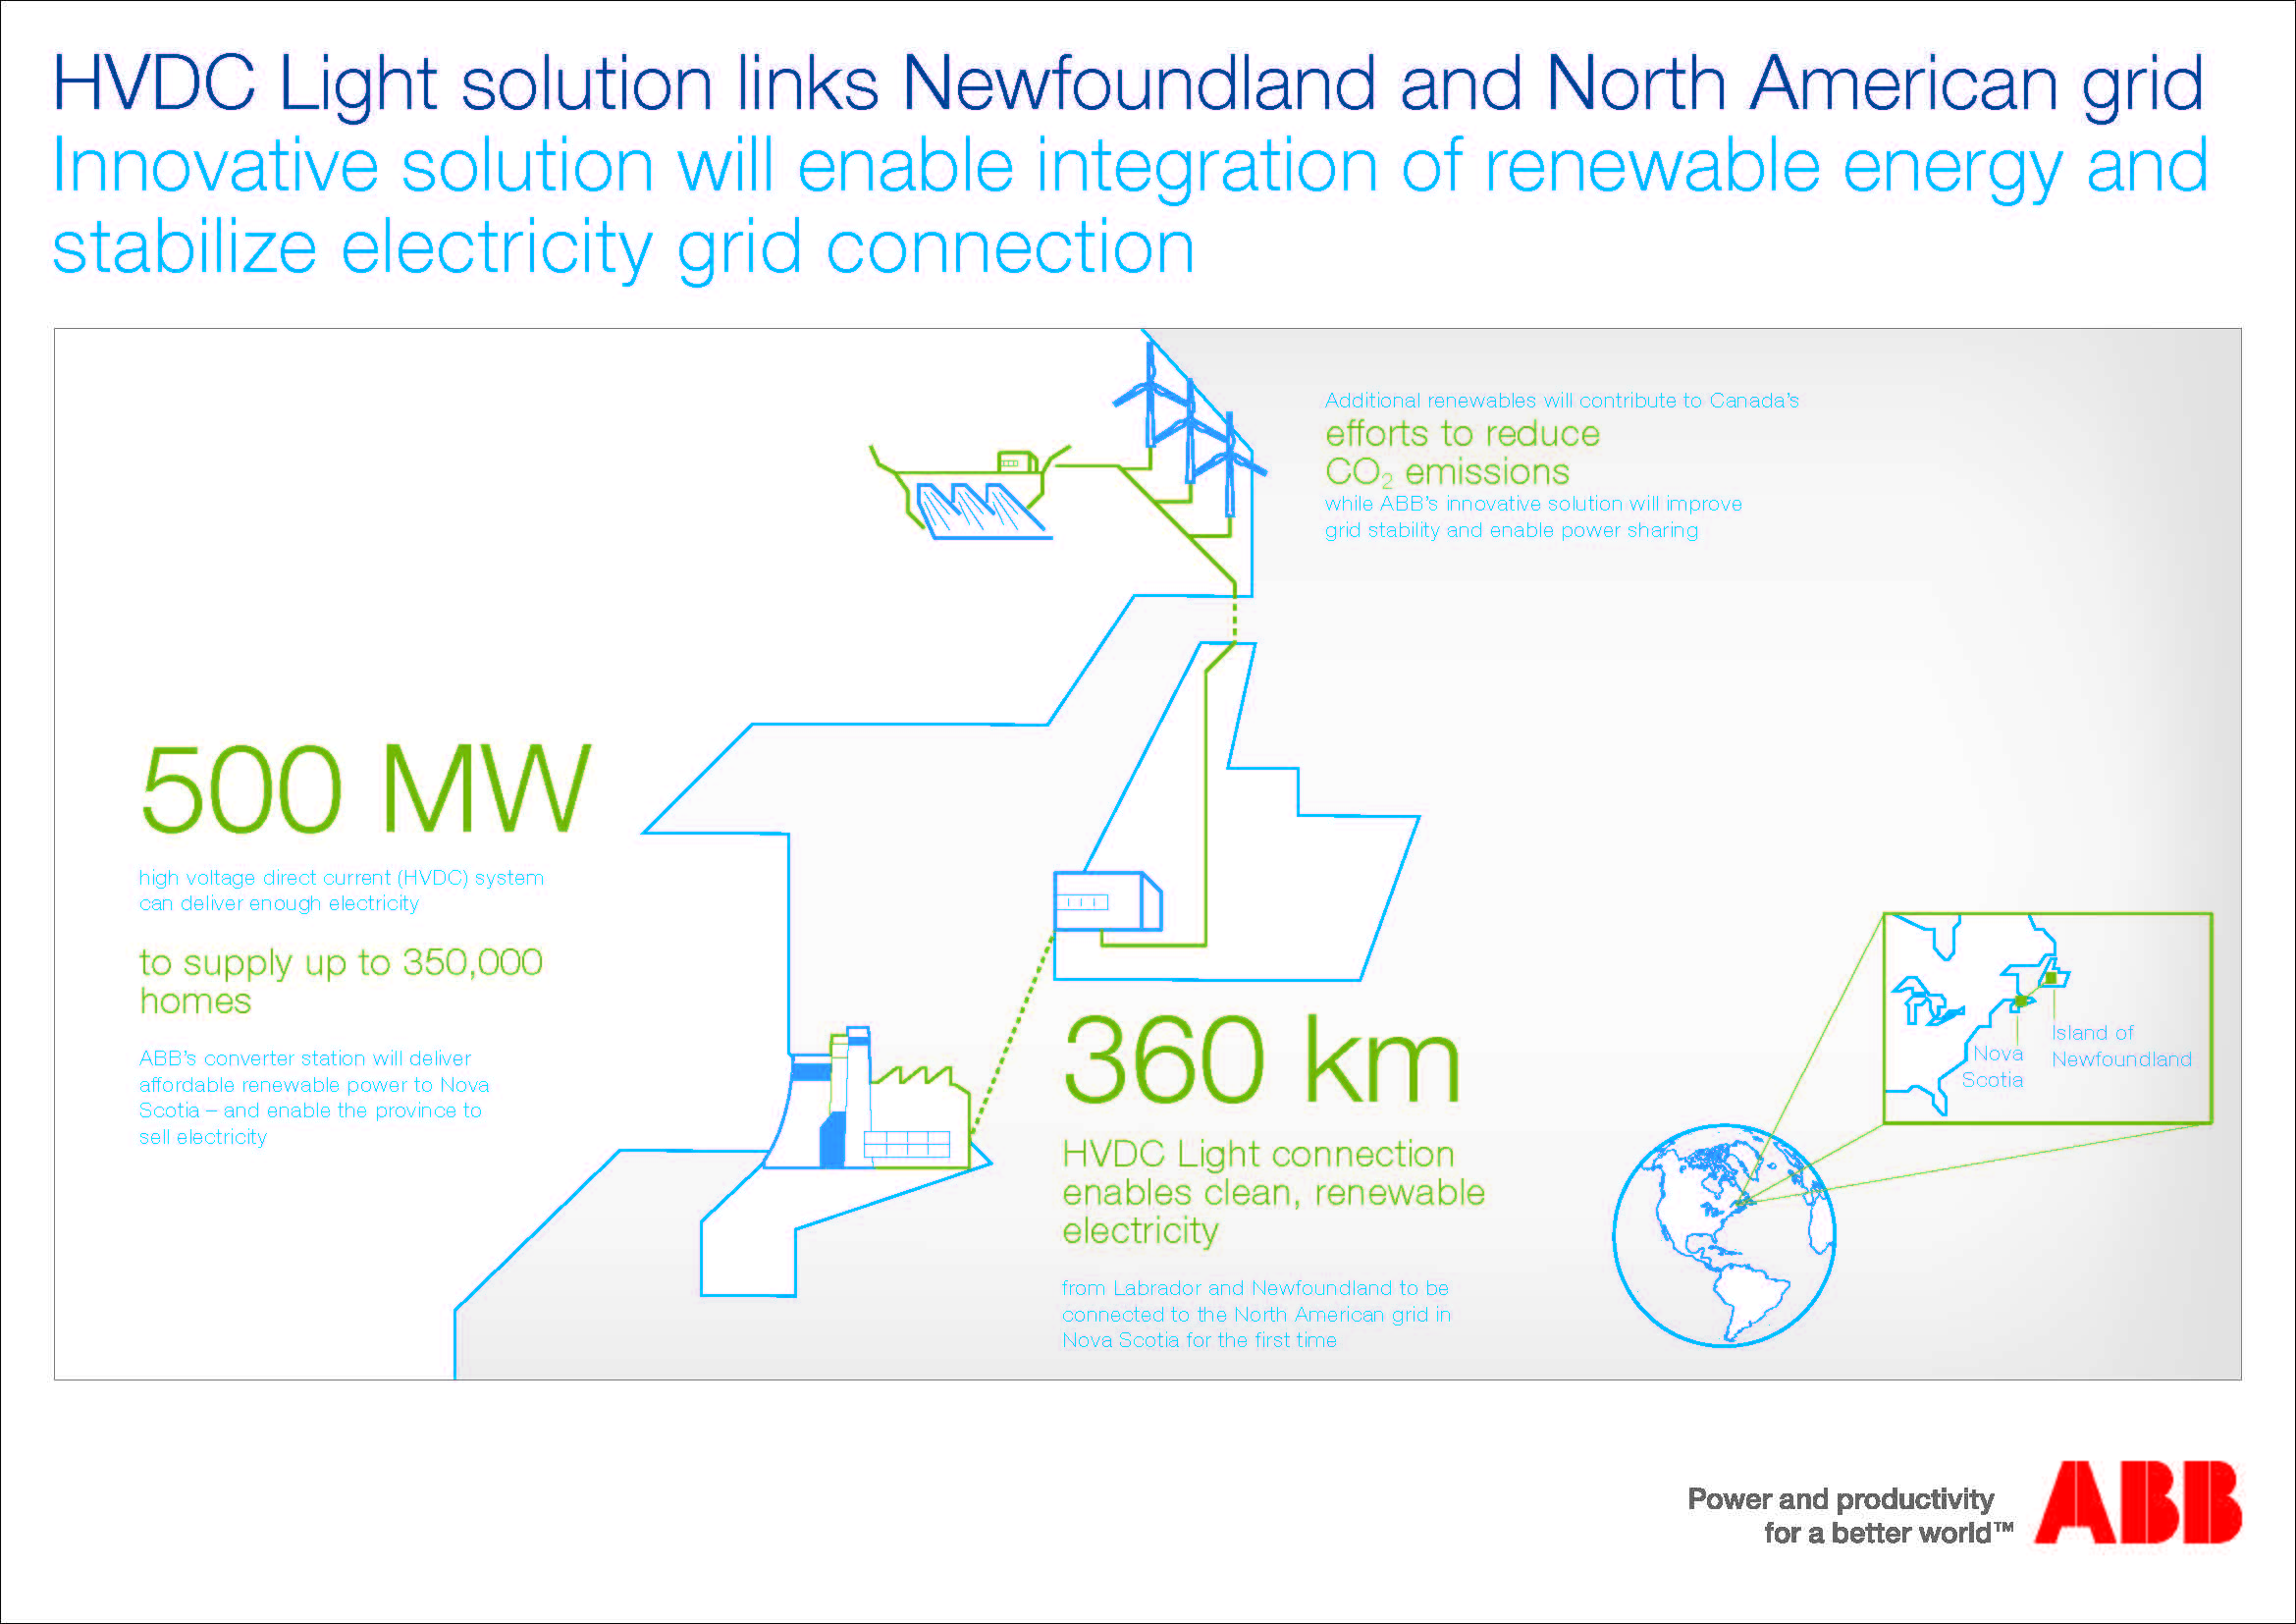 HVDC Light solution links Newfoundland and North American grid